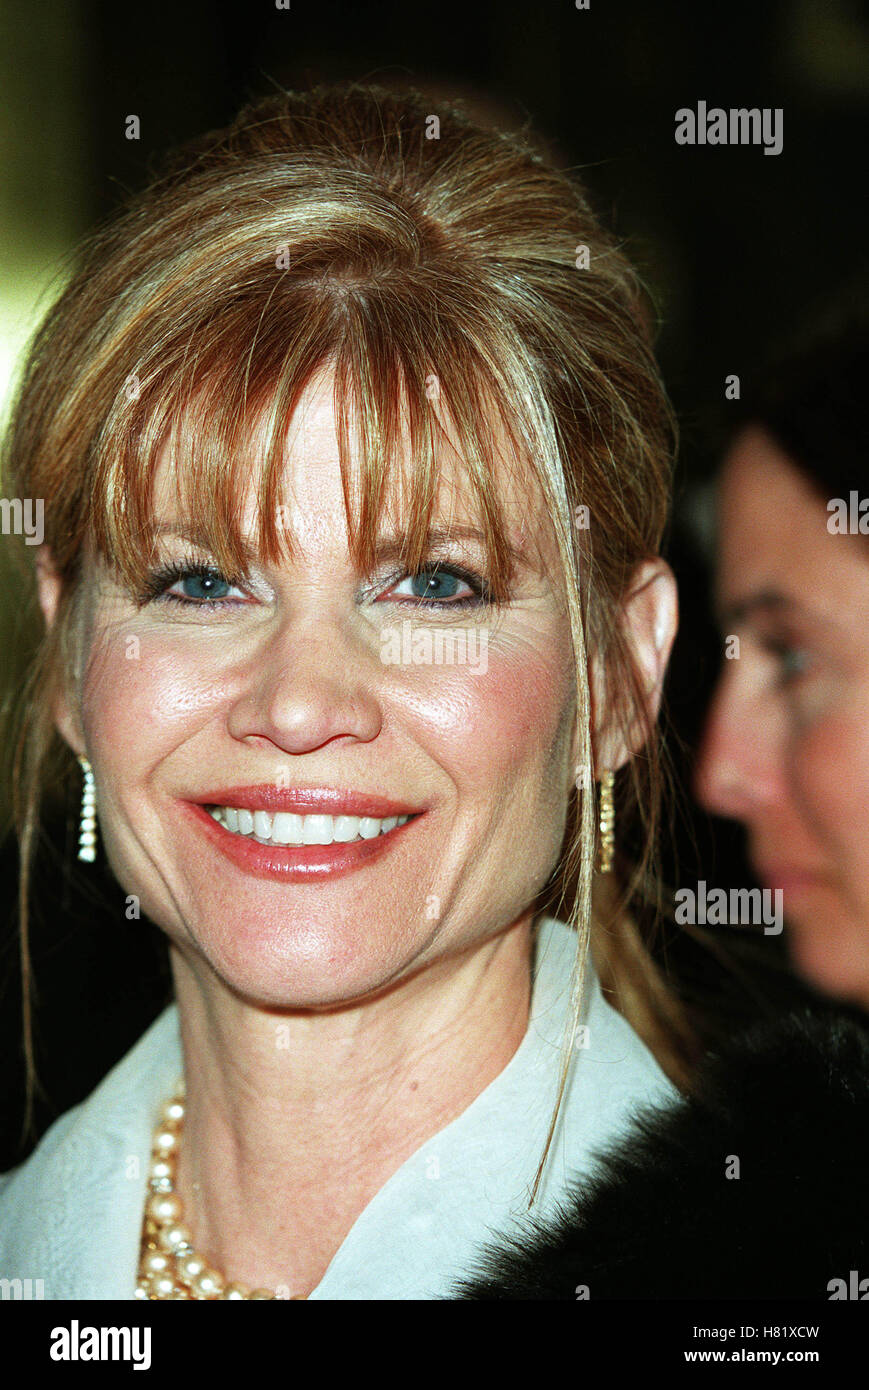 MARKIE POST 'THE COUNT OF MONTE CRISTO' EL CAPITAN THEATRE HOLLYWOOD LOS ANGELES USA 23 January 2002 - Stock Image